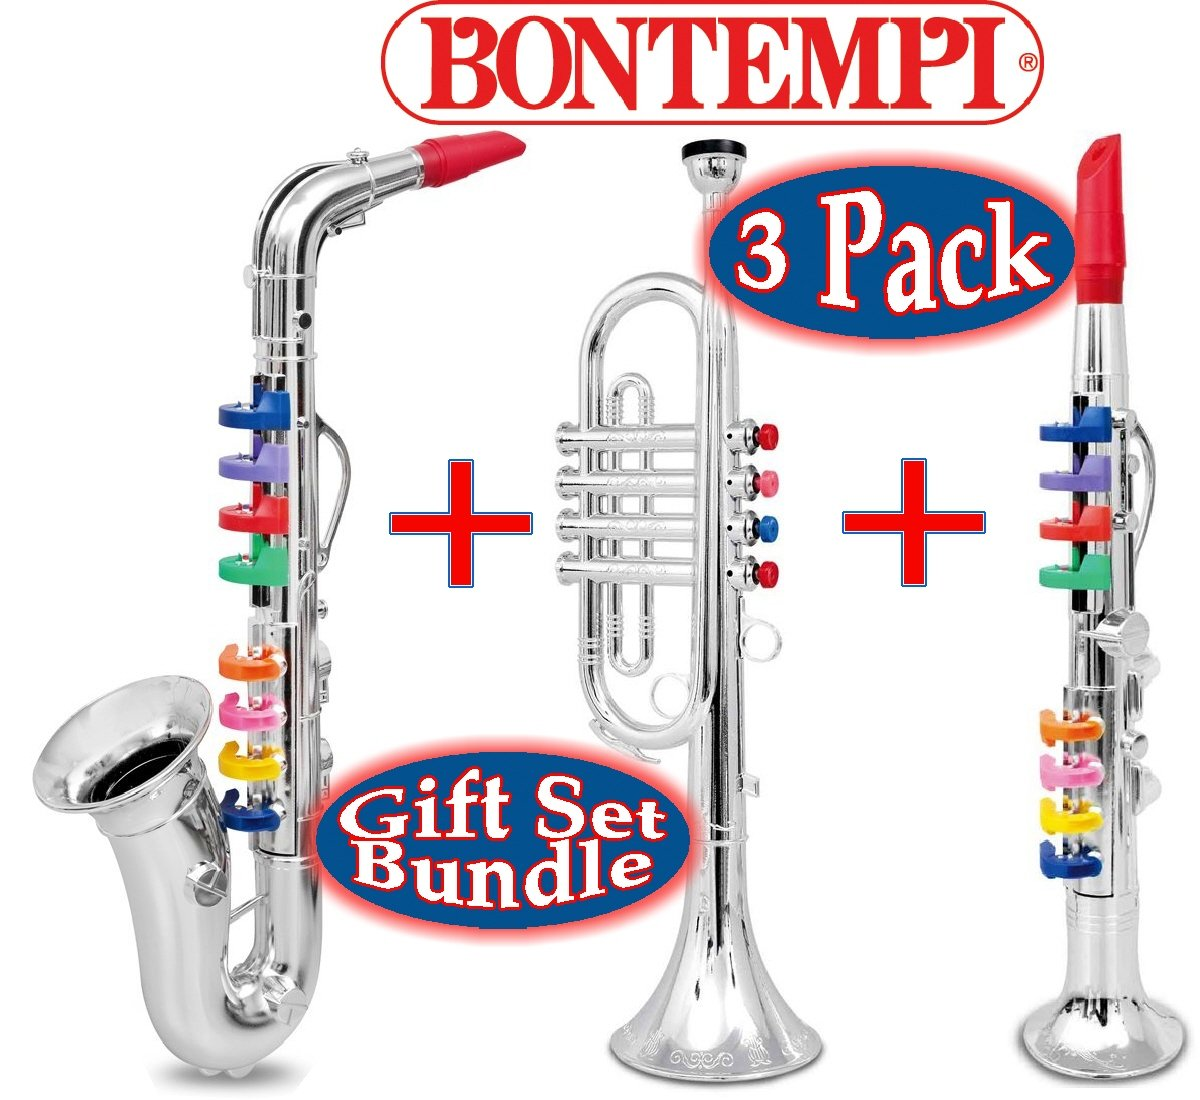 BONTEMPI 16.5'' Wind Instruments Gift Set Bundle - 3 Pack Includes Saxophone, Trumpet & Clarinet